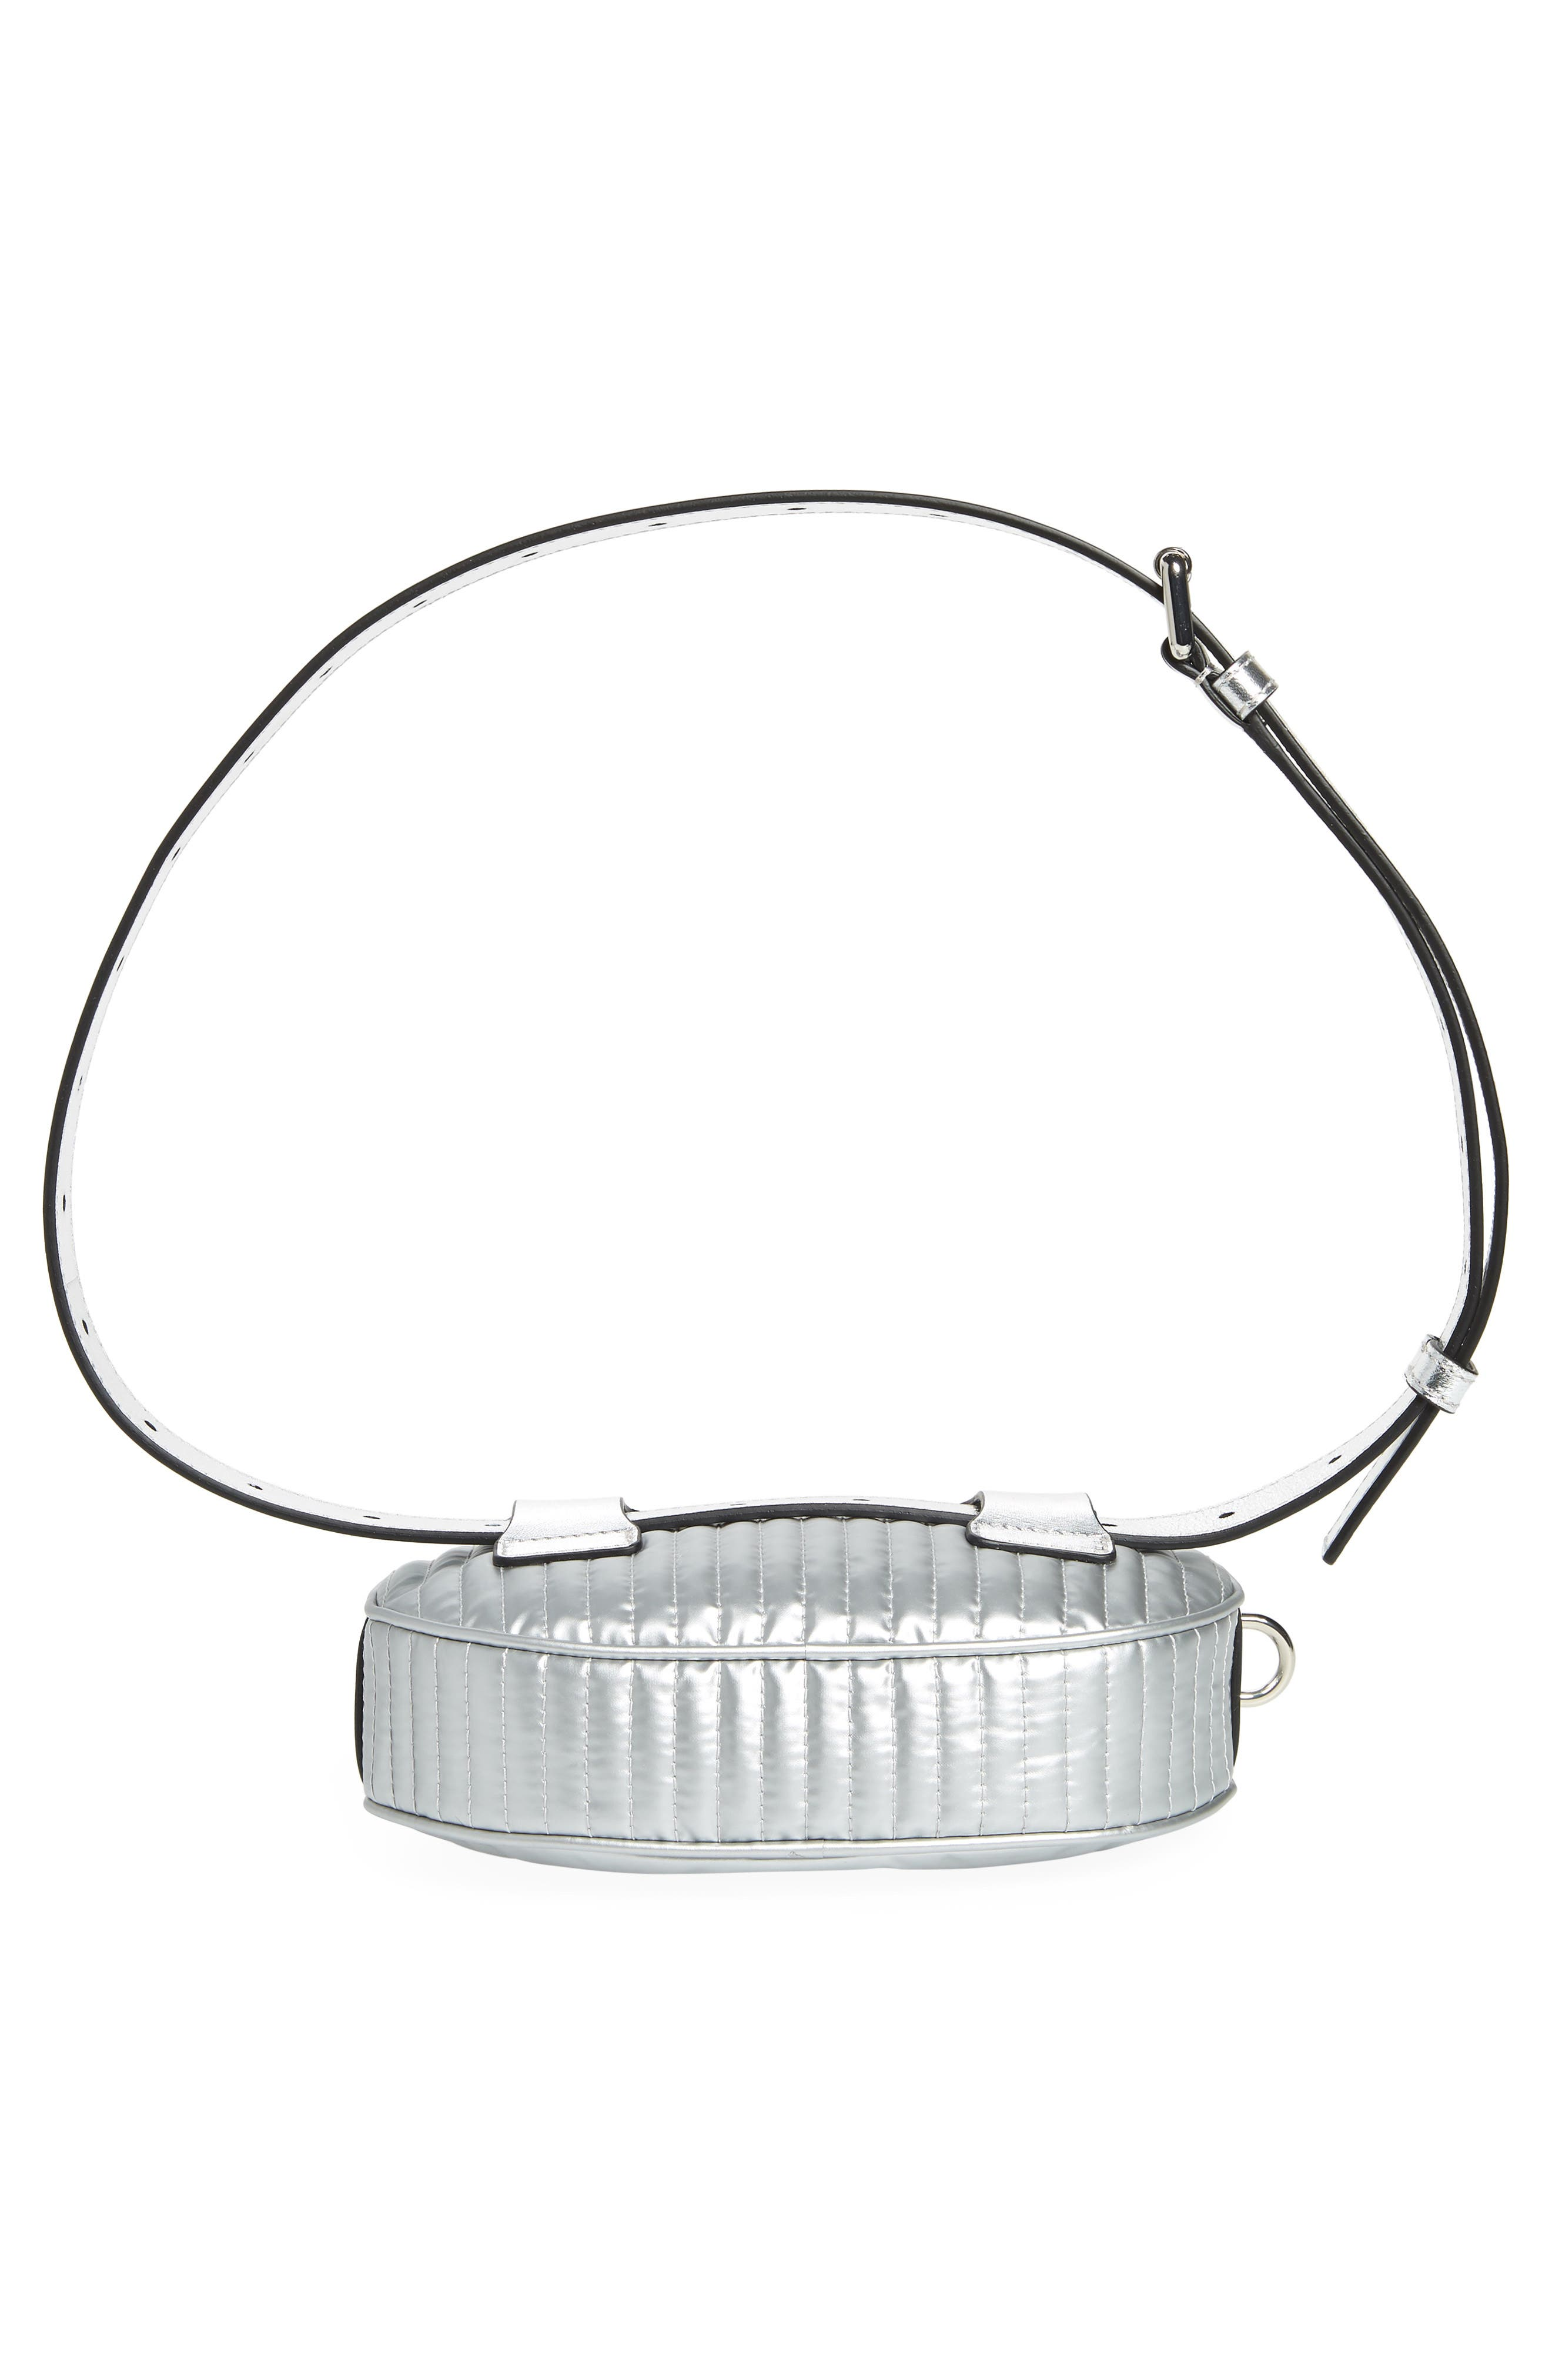 MOSCHINO, Silver Teddy Belt Bag, Alternate thumbnail 7, color, SILVER